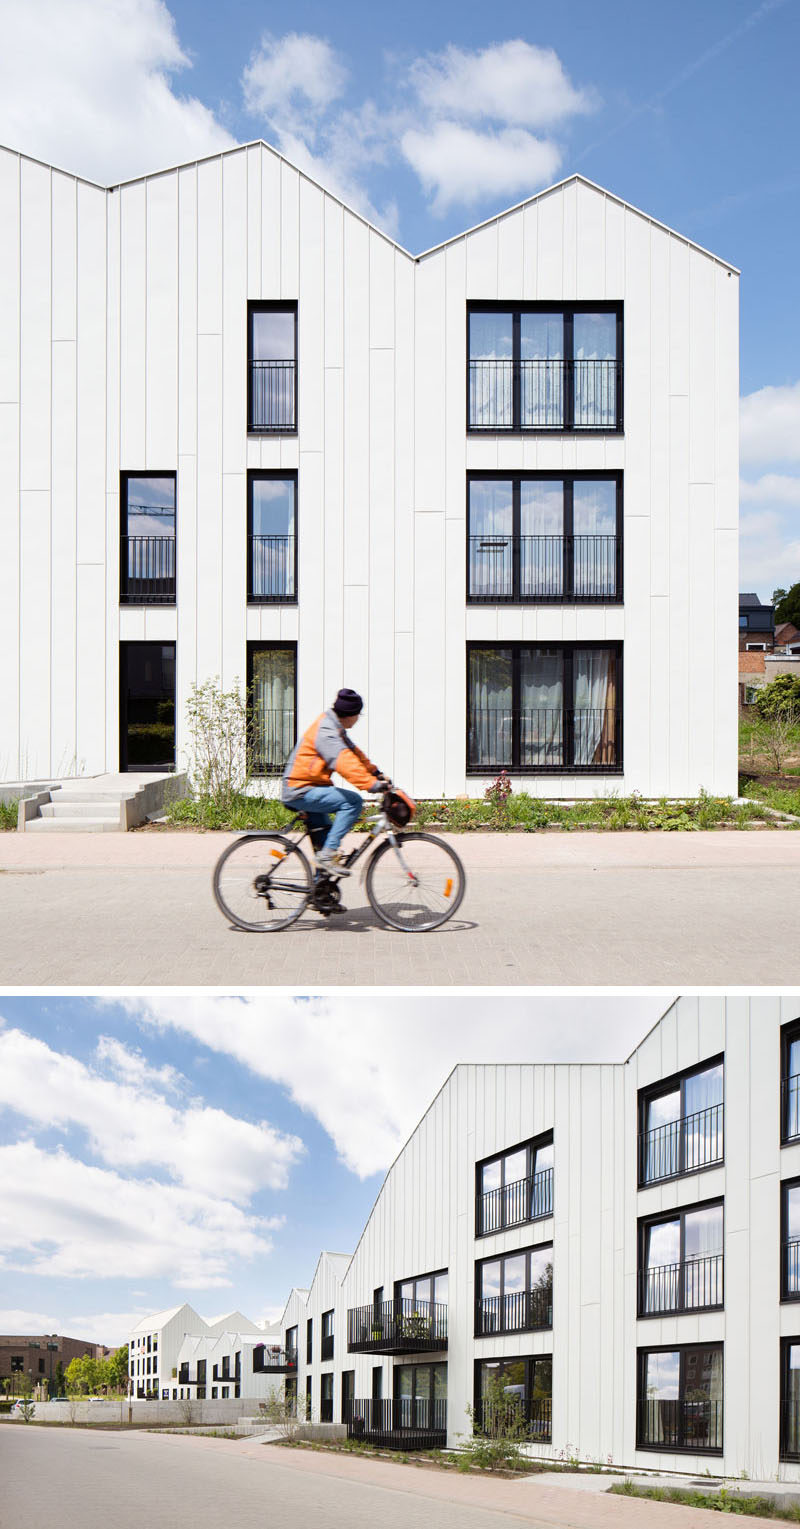 House Exterior Colors - 11 Modern White Houses From Around The World // Black window frames and balconies create a striking contrast against the white panels covering the exteriors of this row of houses.